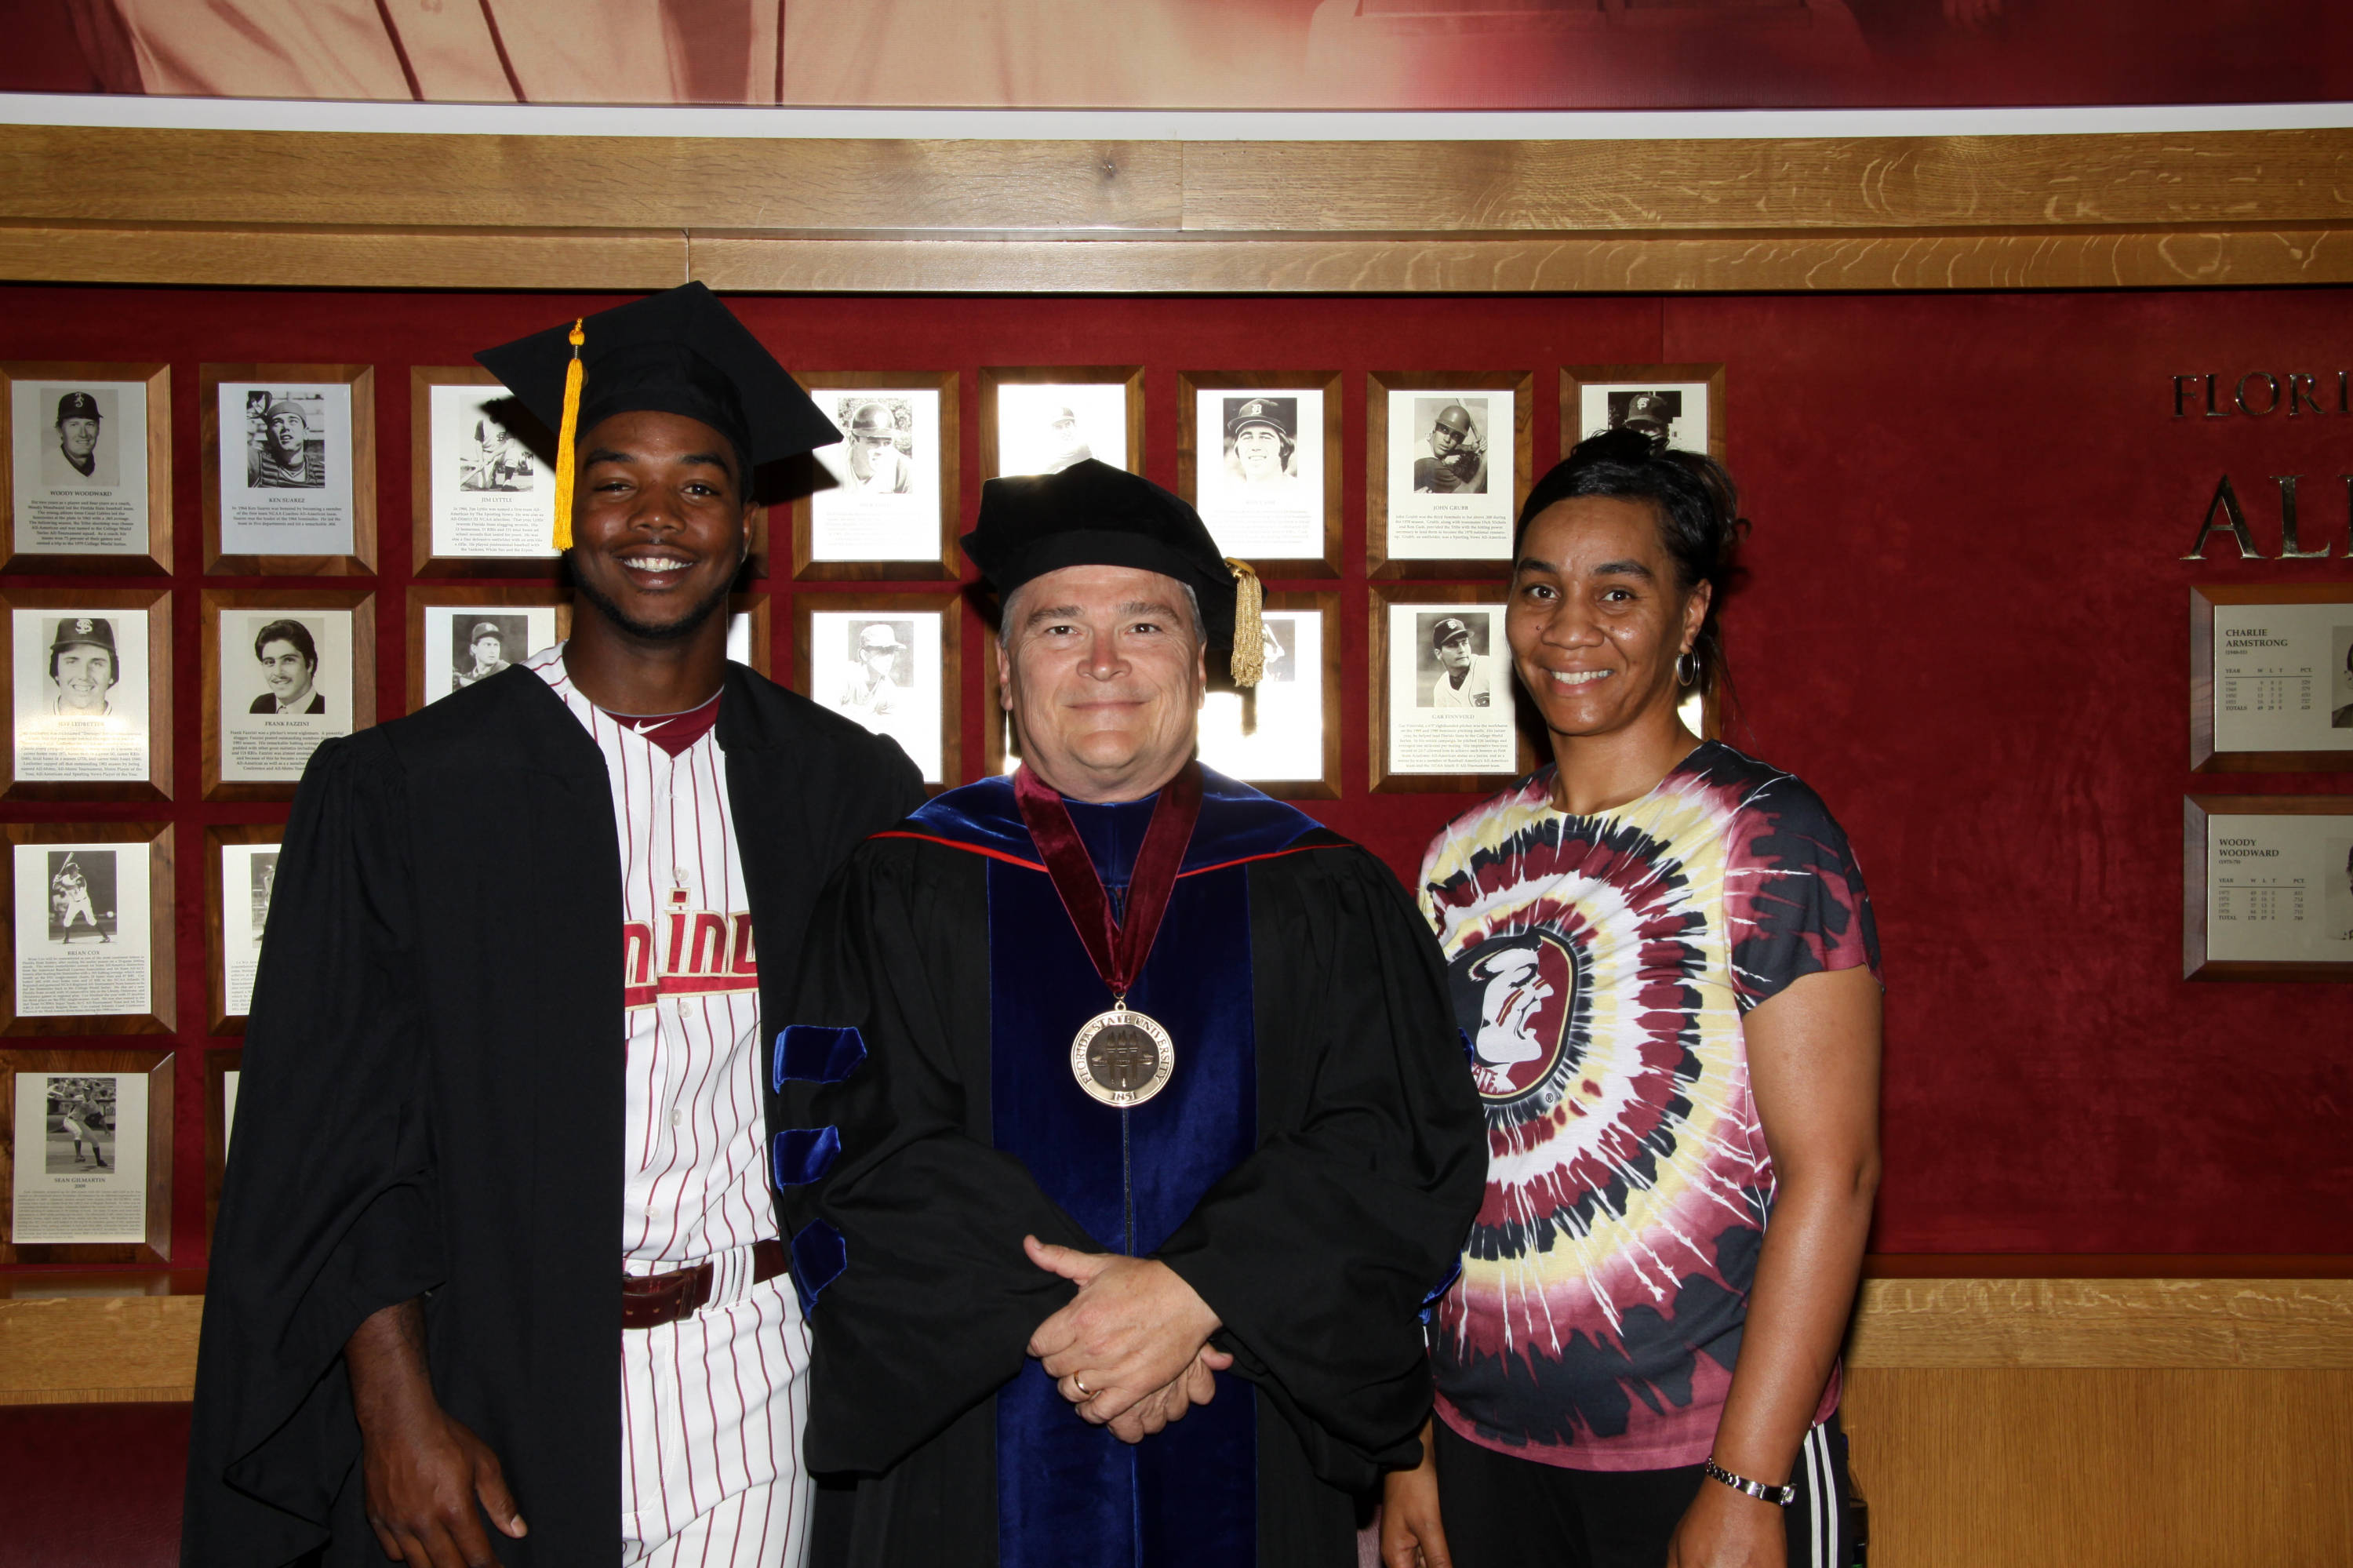 2011 Spring Graduation Ceremony held at Dick Howser Stadium to honor the graduating baseball seniors. Taiwan Easterling (1) with his mother and President Barron